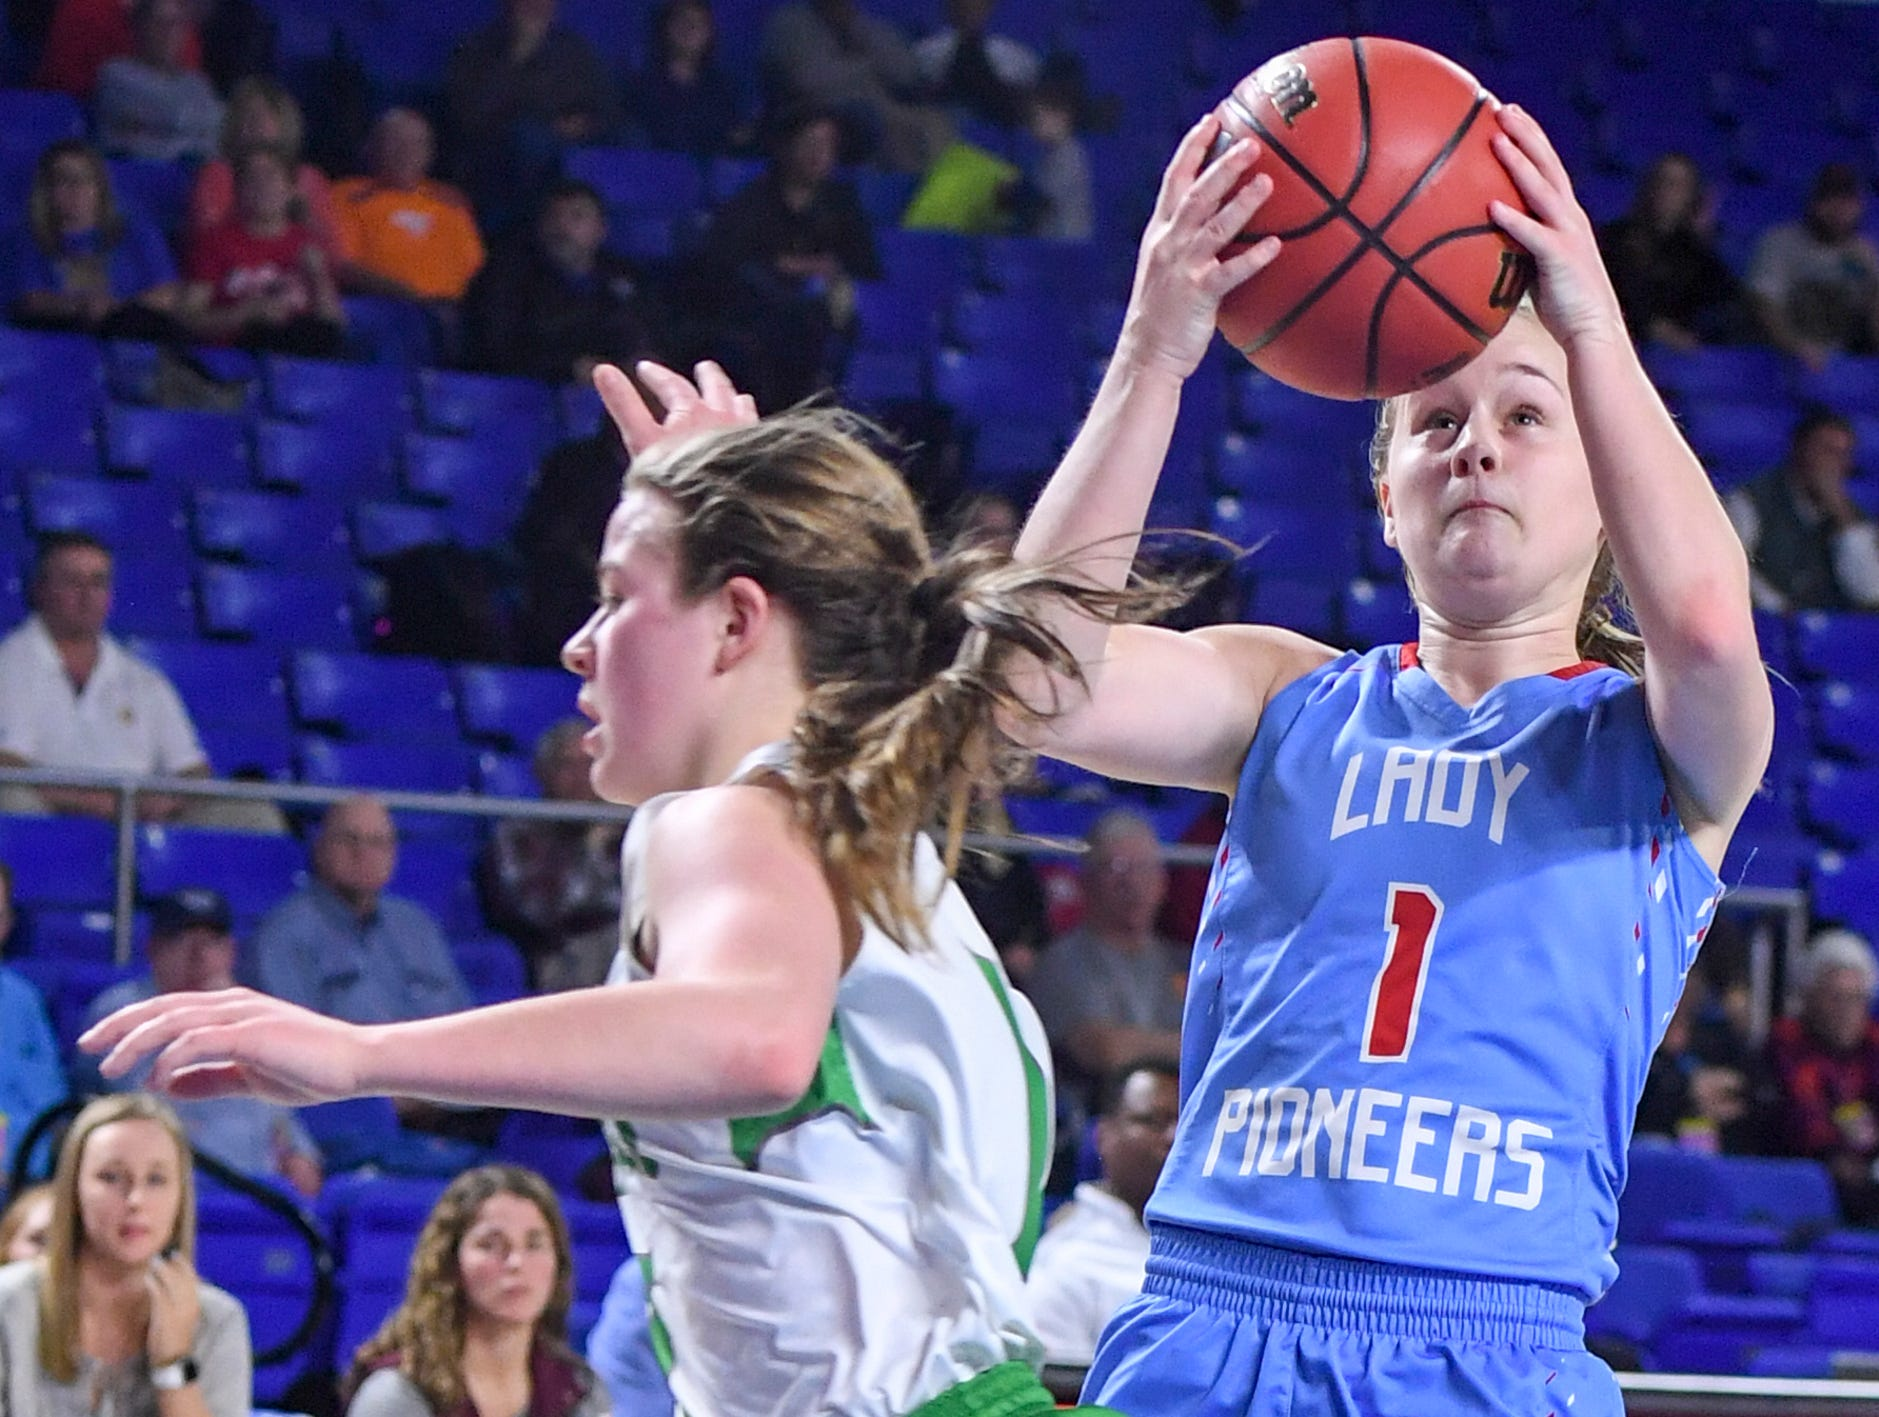 Midway's Caitlyn Ross (1) runs past Gibson County's Ashton Lannom (1) during their Class A semifinal game, Friday, March 8, 2019, in  Murfreesboro. Gibson County defeated Midway, 75-61.